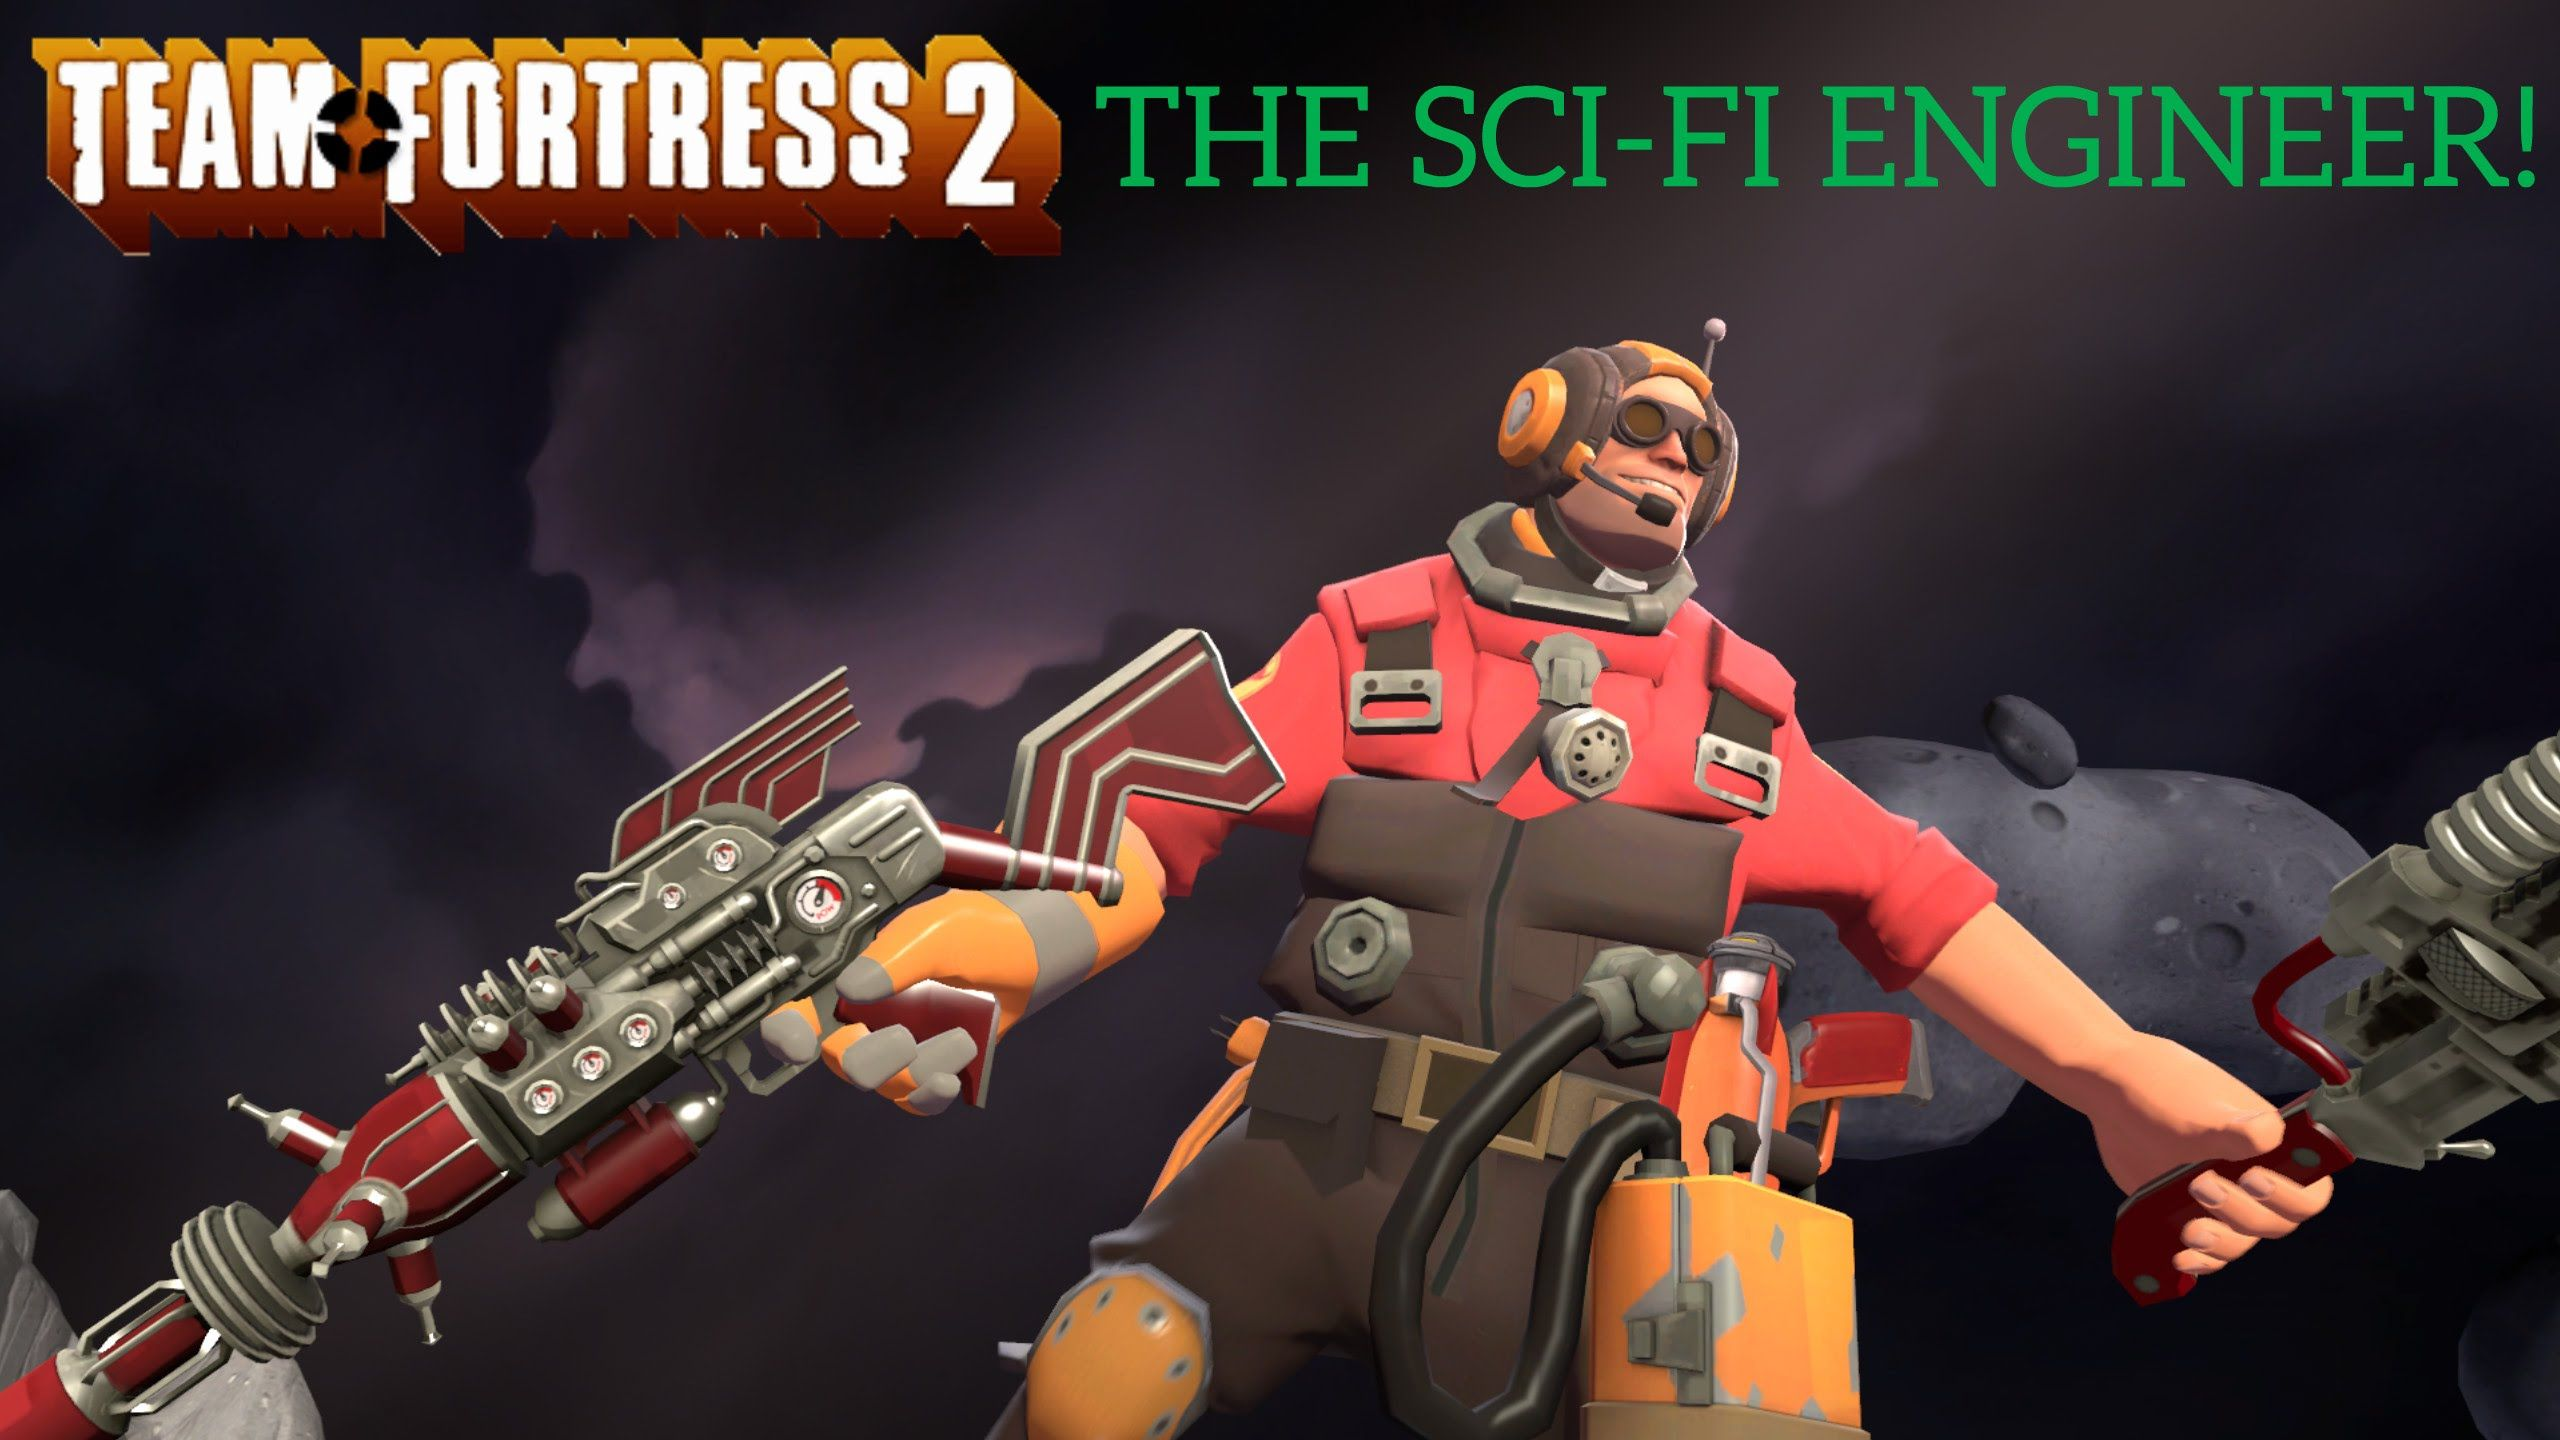 TF2: Weapon challenges]-[The Sci-fi engineer! | [!Video and